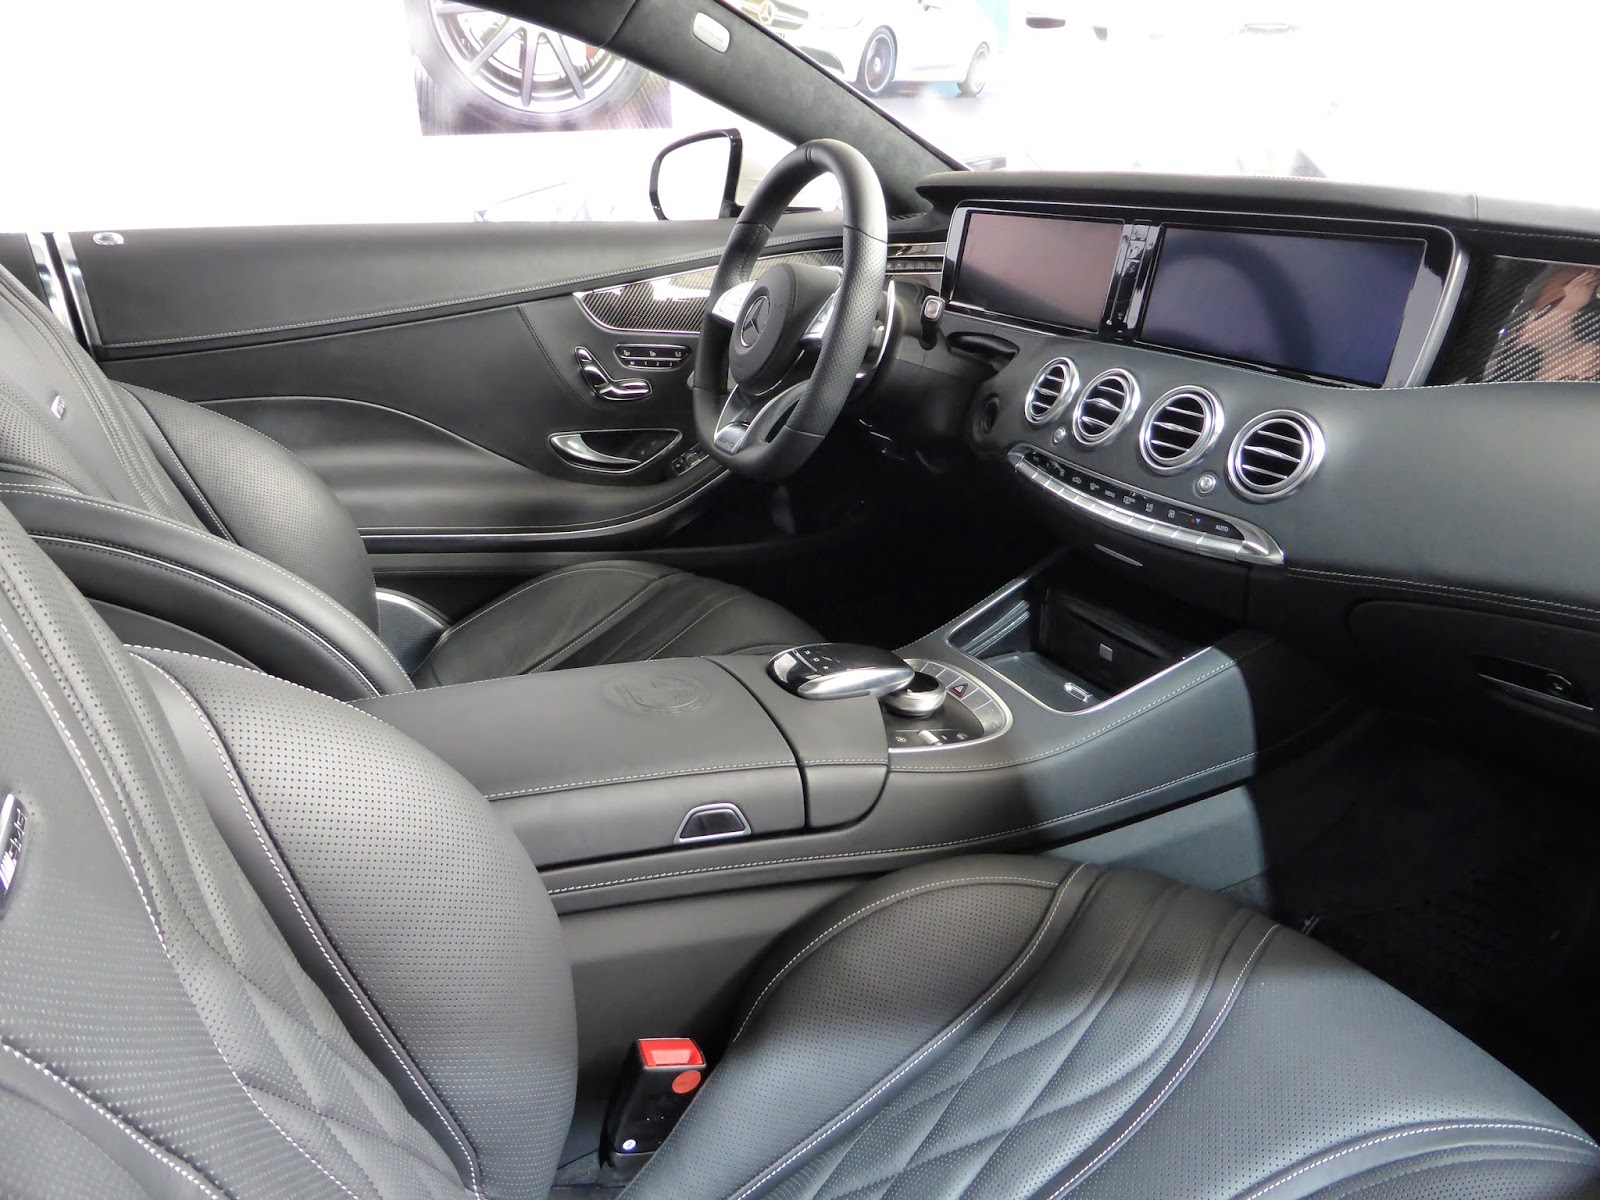 The S Coupe's interior is a masterpiece of luxury and simplicity